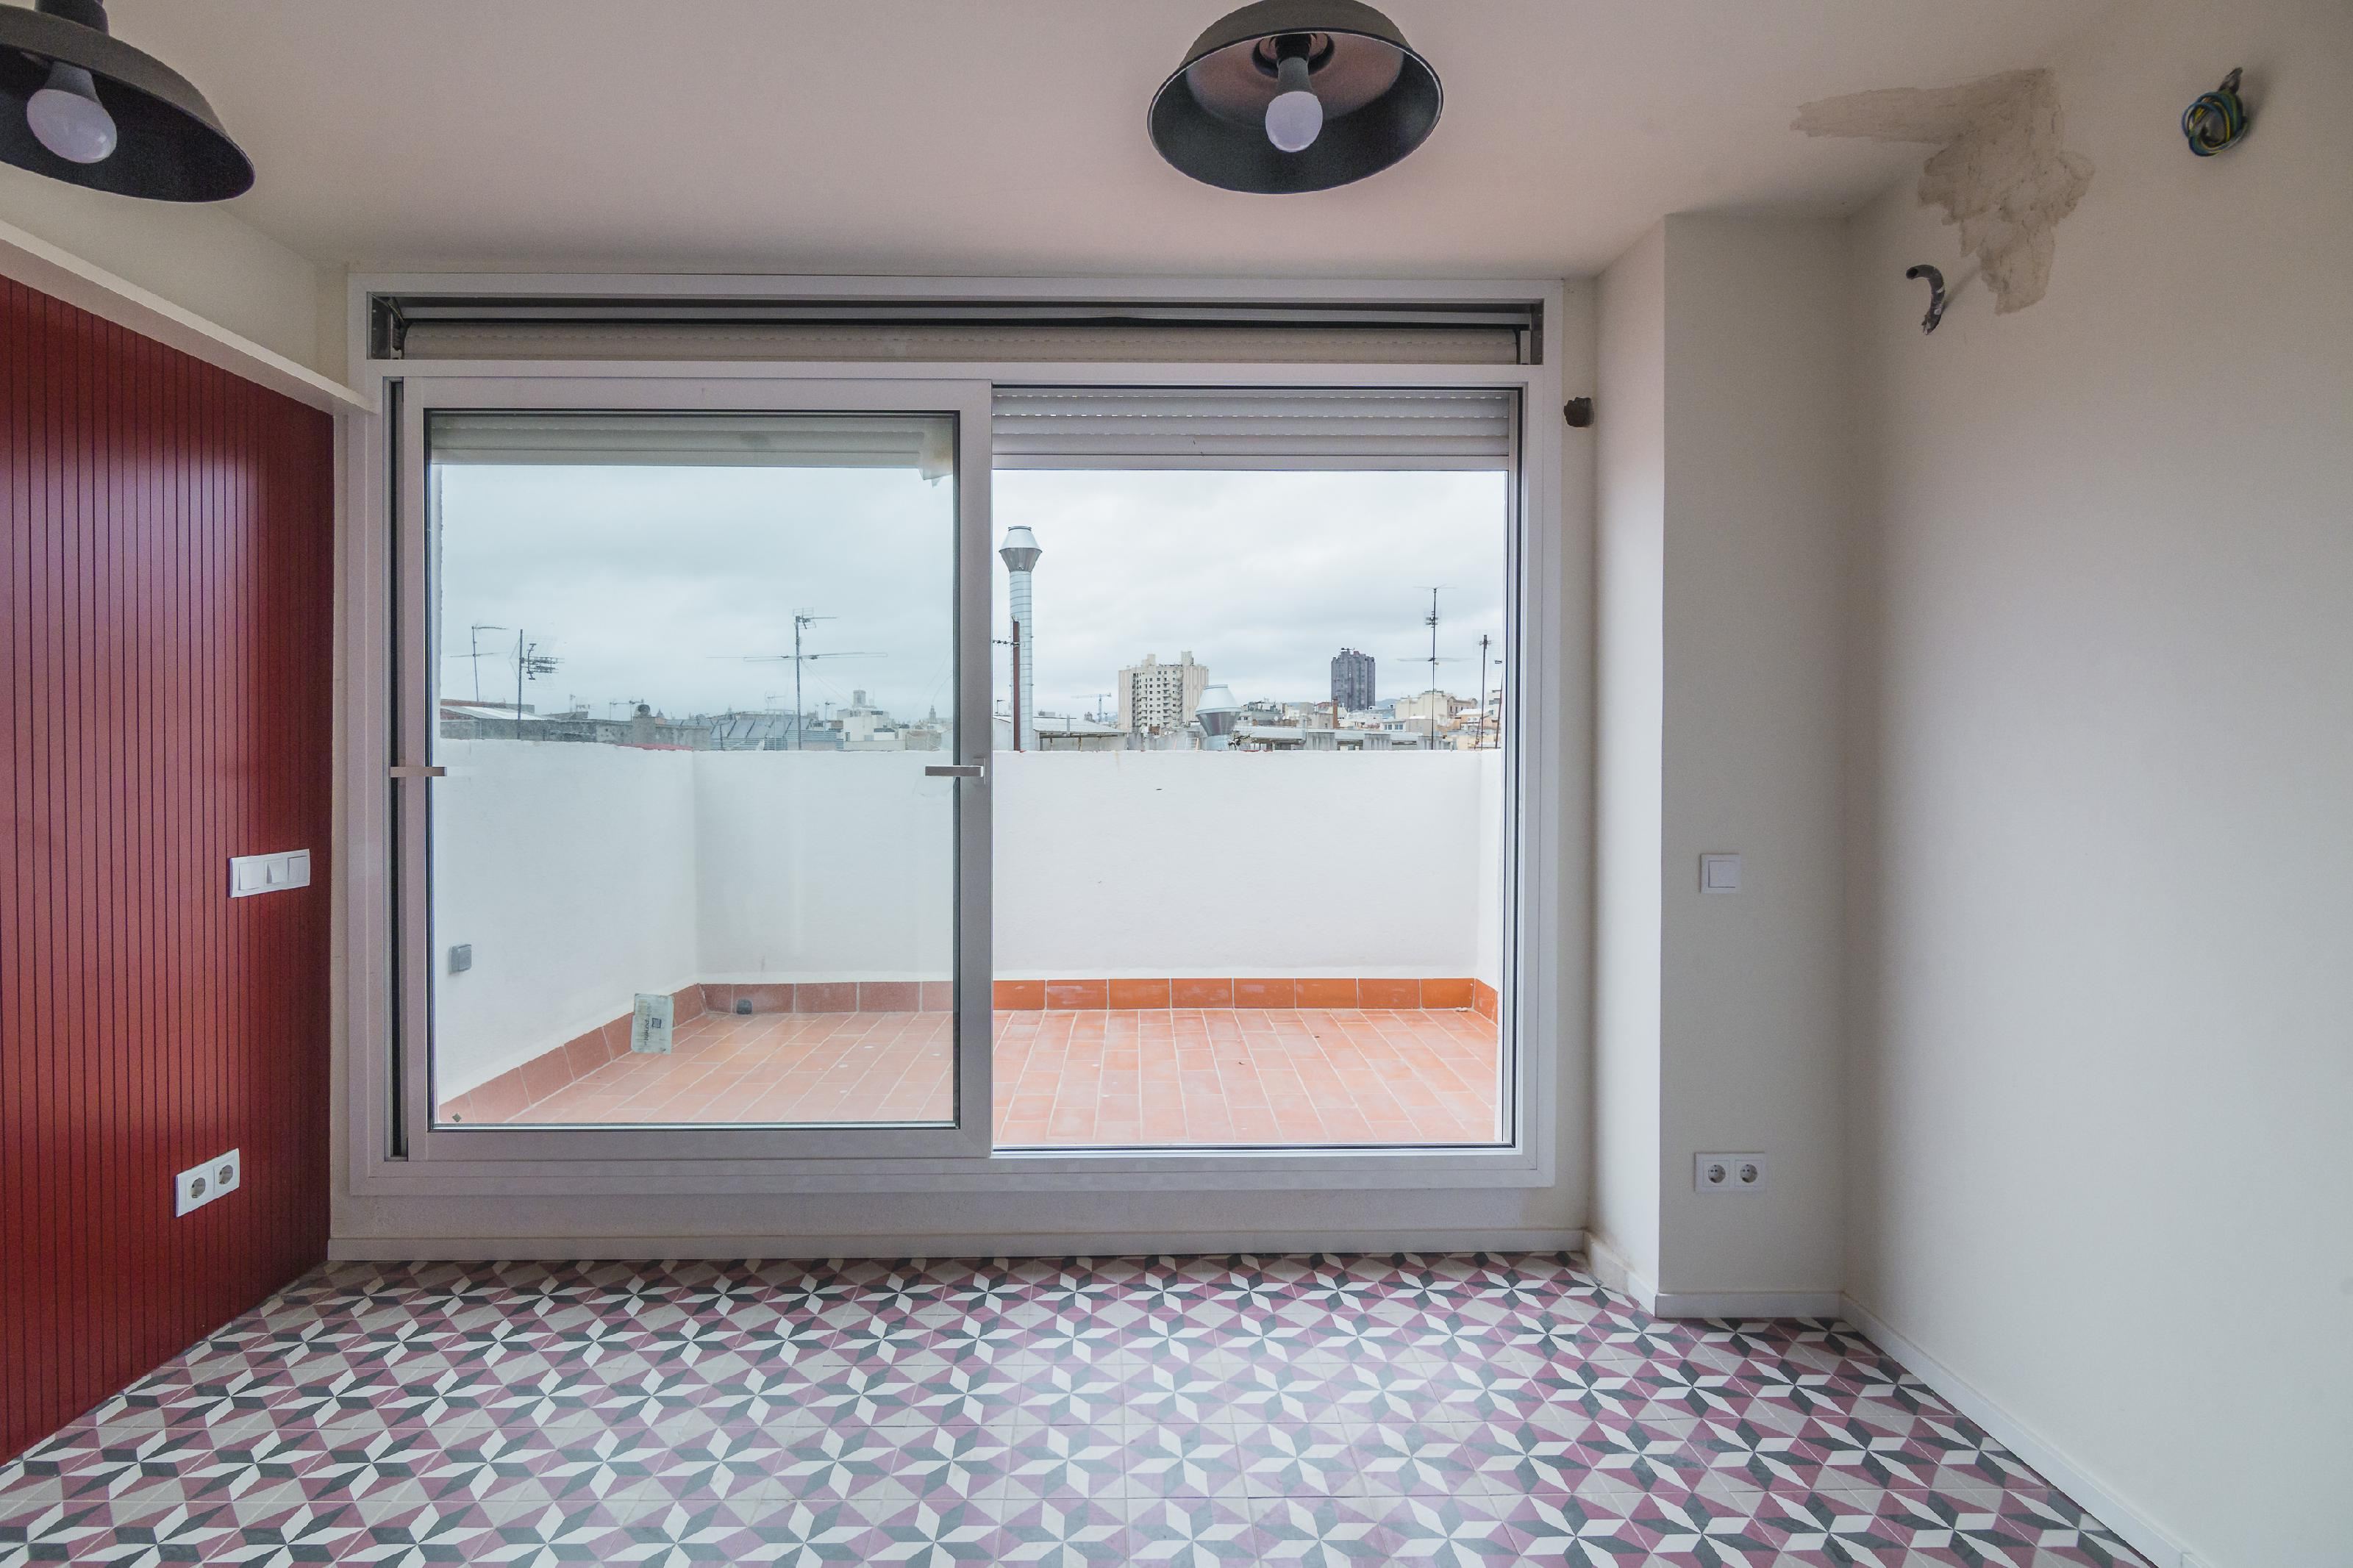 237520 Flat for sale in Ciutat Vella, St. Pere St. Caterina and La Ribera 23